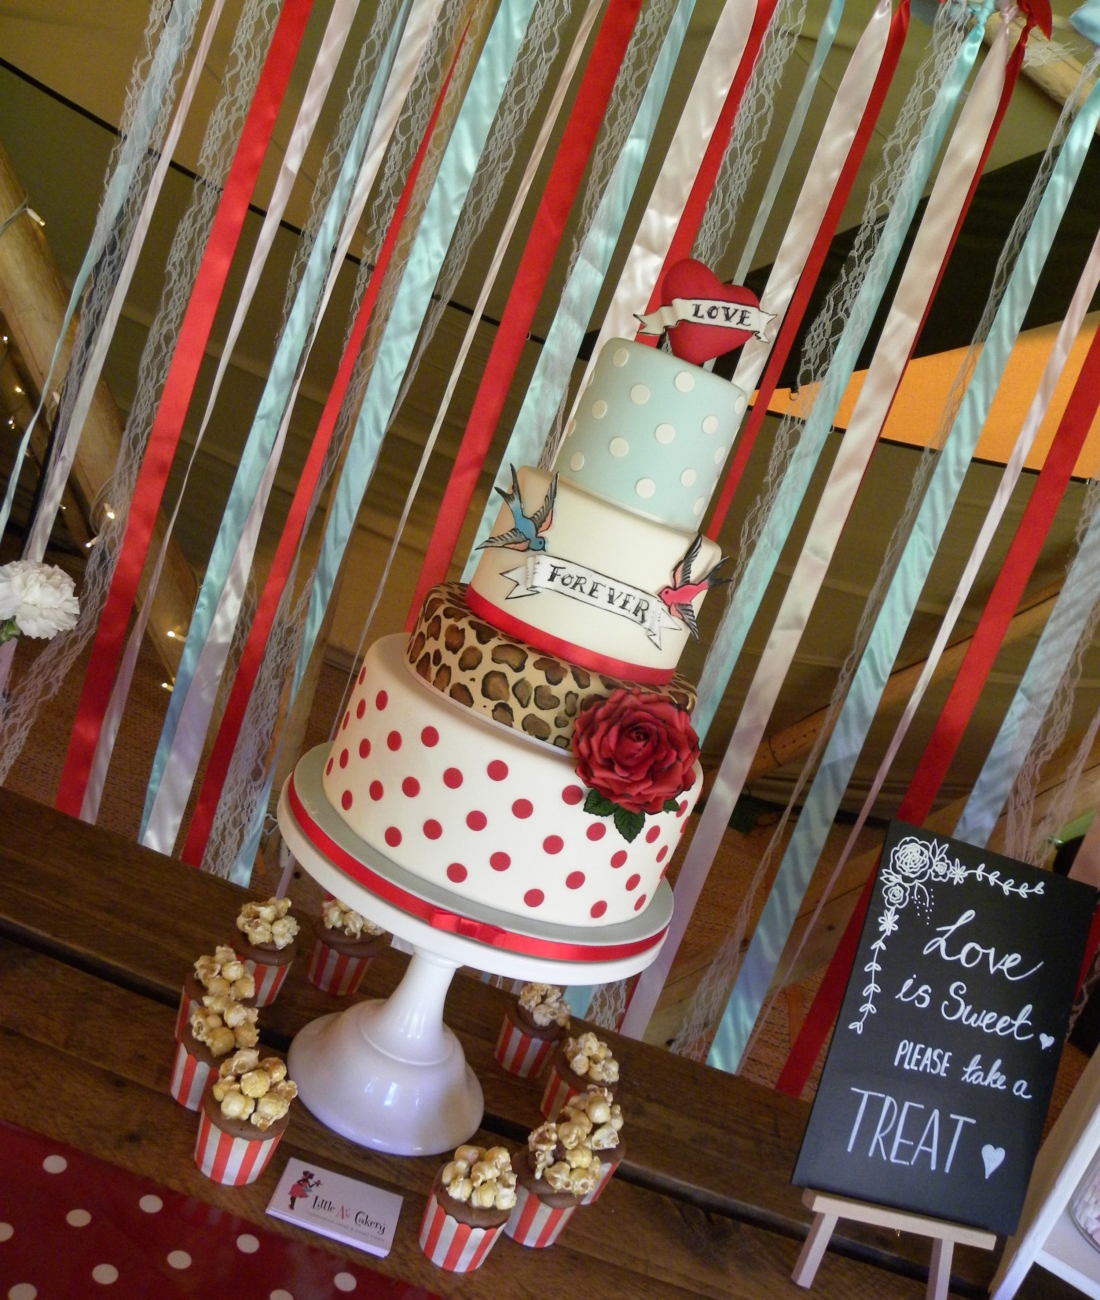 50s-vintage-rock-n-roll-wedding-cake-festival-22